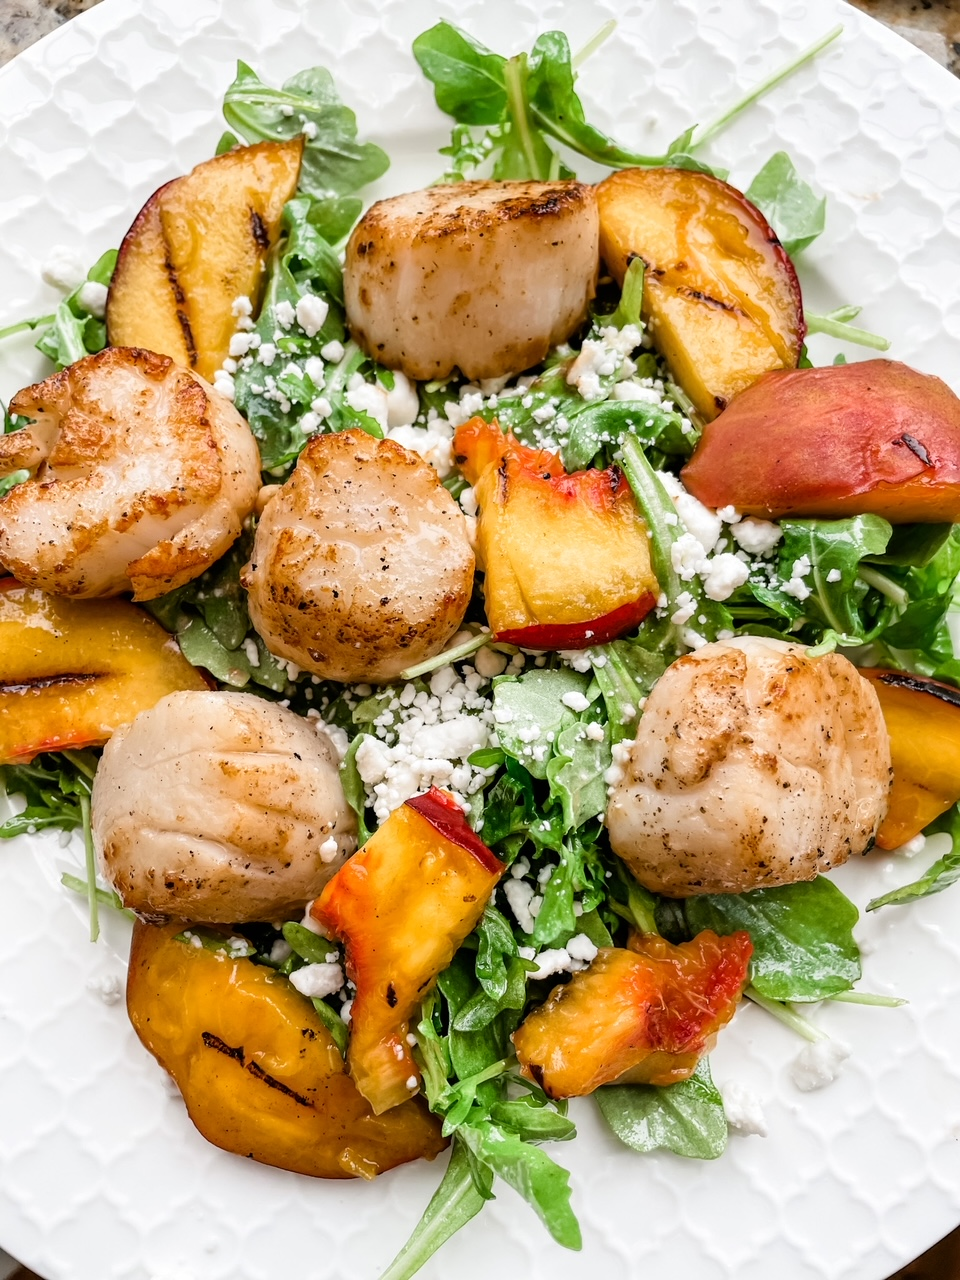 A cllose-up shot of the Arugula Salad with Scallops and Grilled Peaches